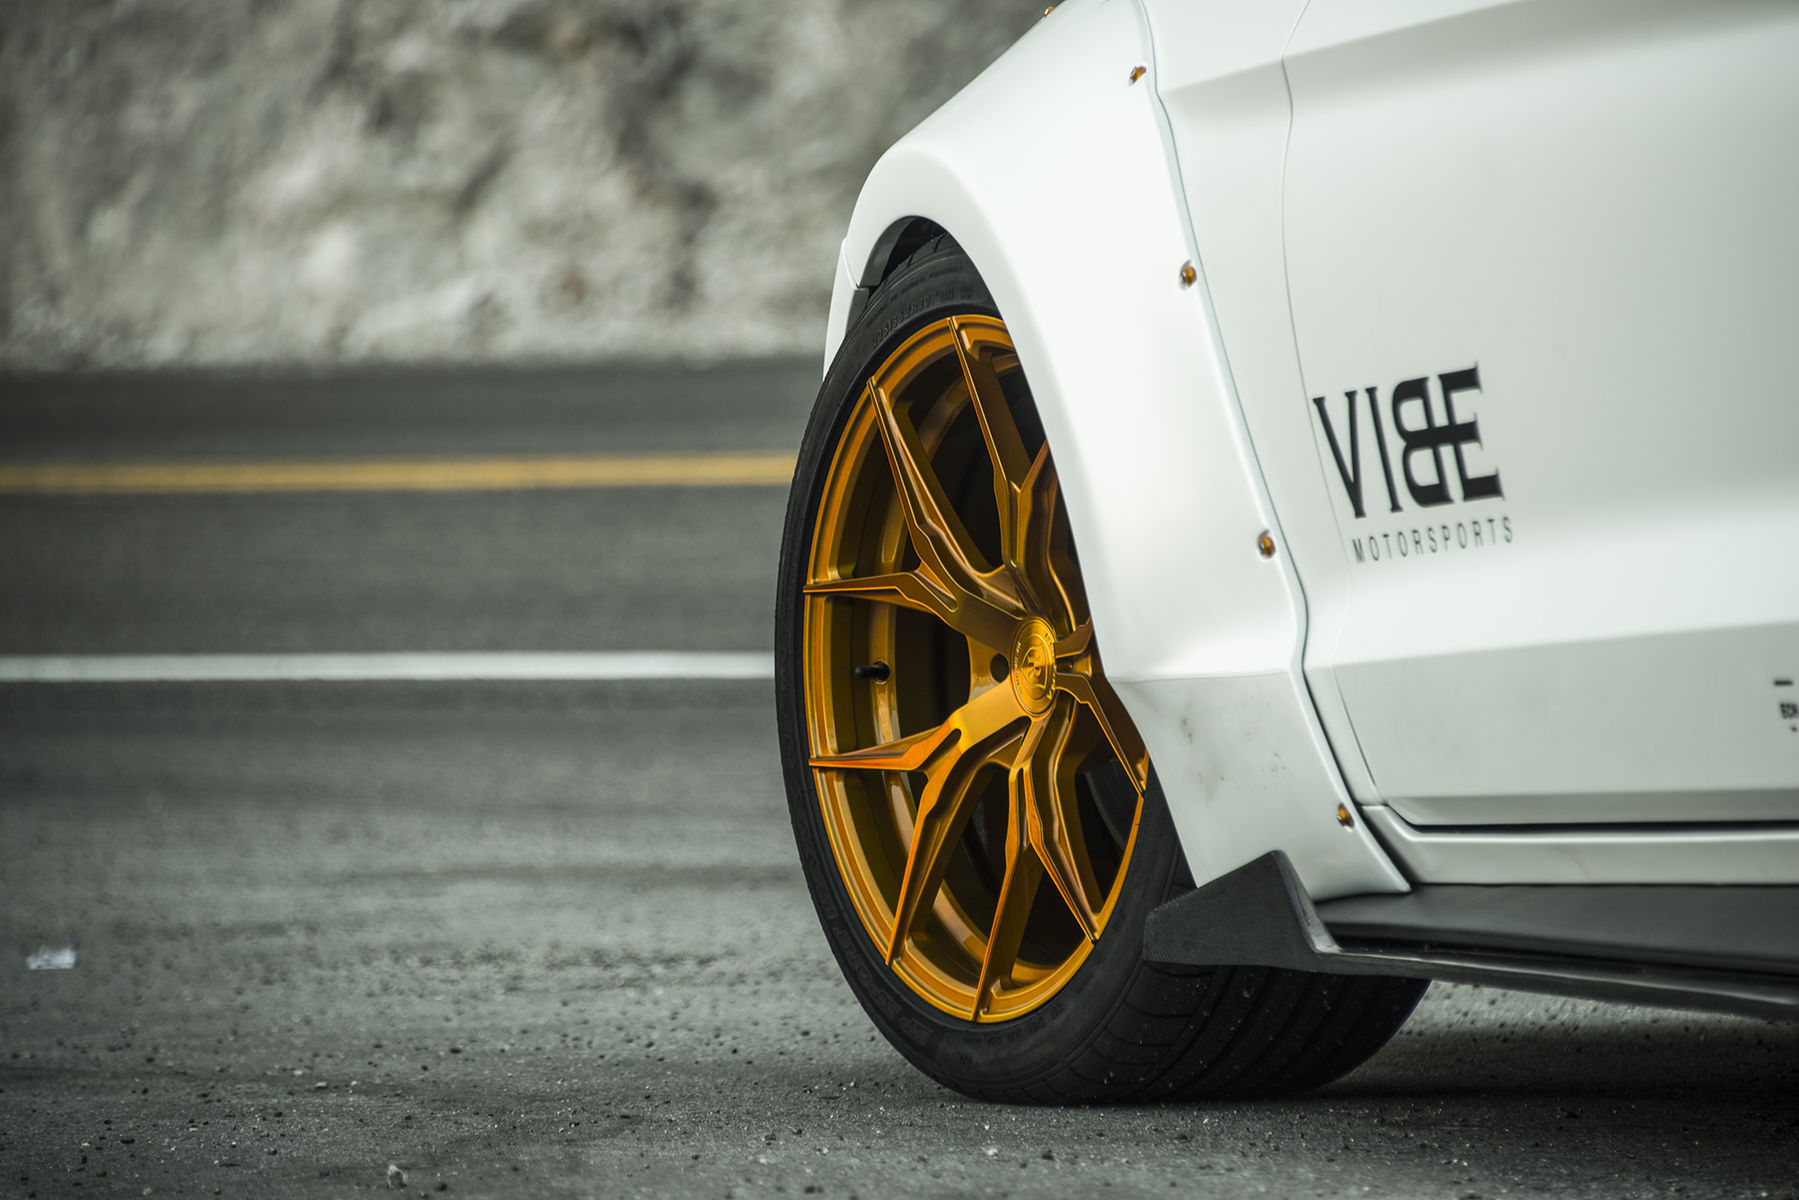 2015 Ford Mustang | Widebody Mustang EcoBoost on 20